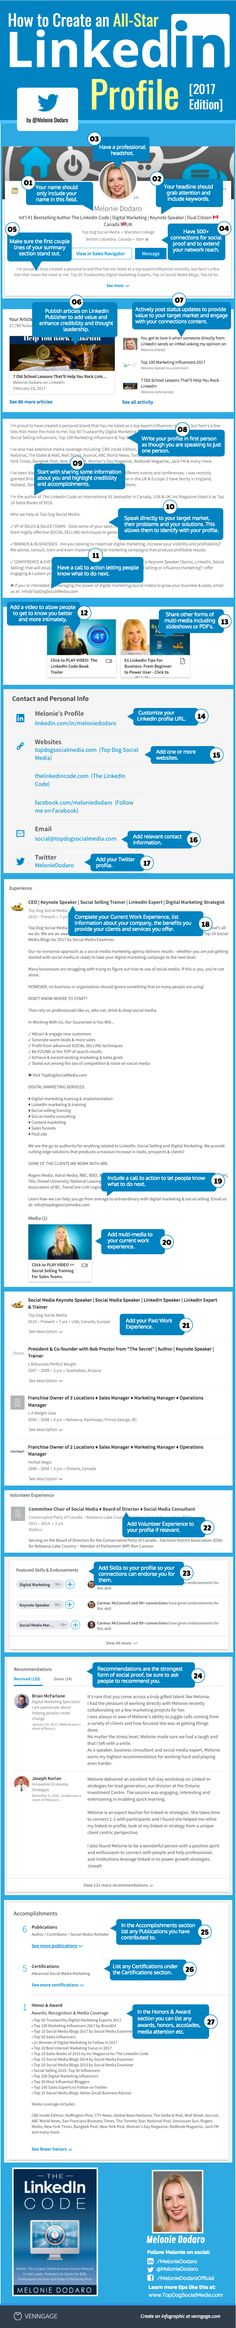 How to Create an All-Star #LinkedIn Profile #Infographic #SocialMedia